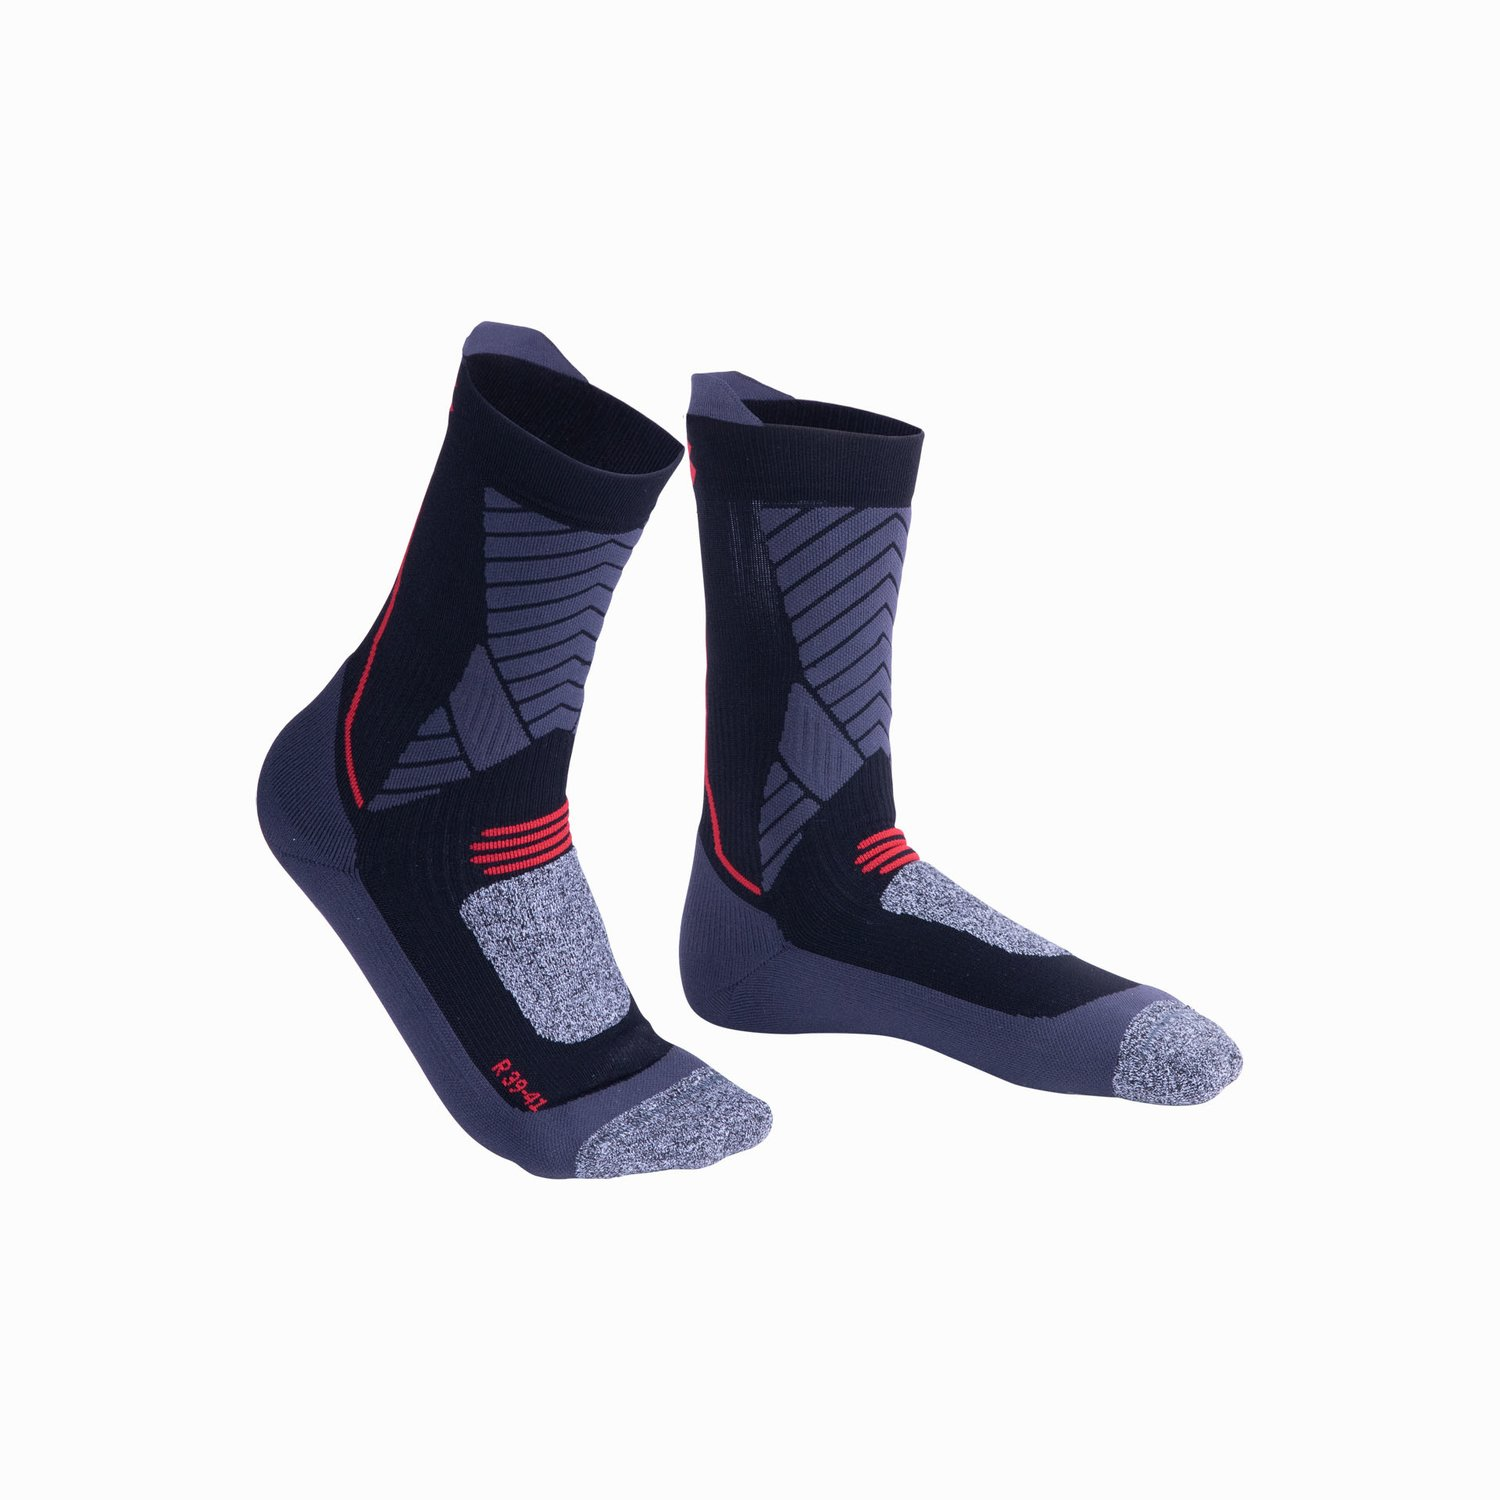 Win-D Heat Ankle Sock - Black